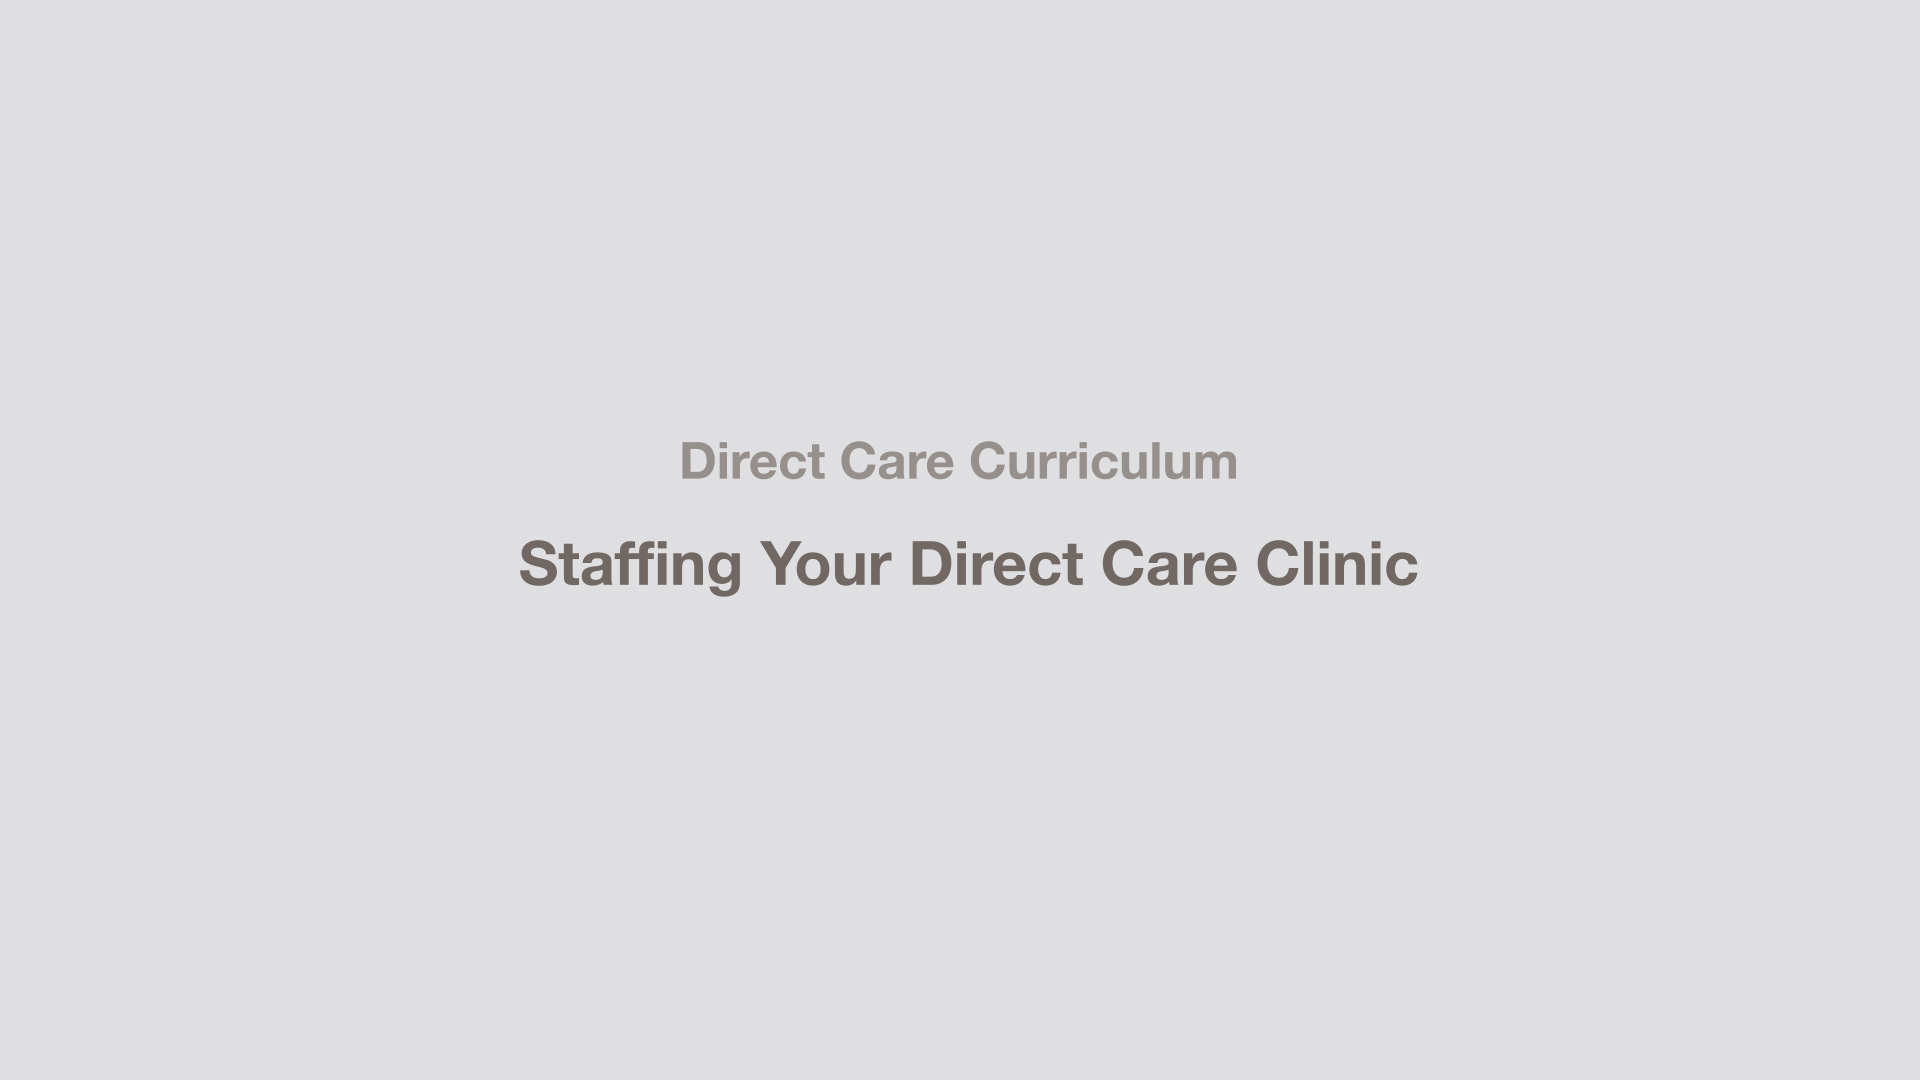 Staffing Your Direct Care Clinic